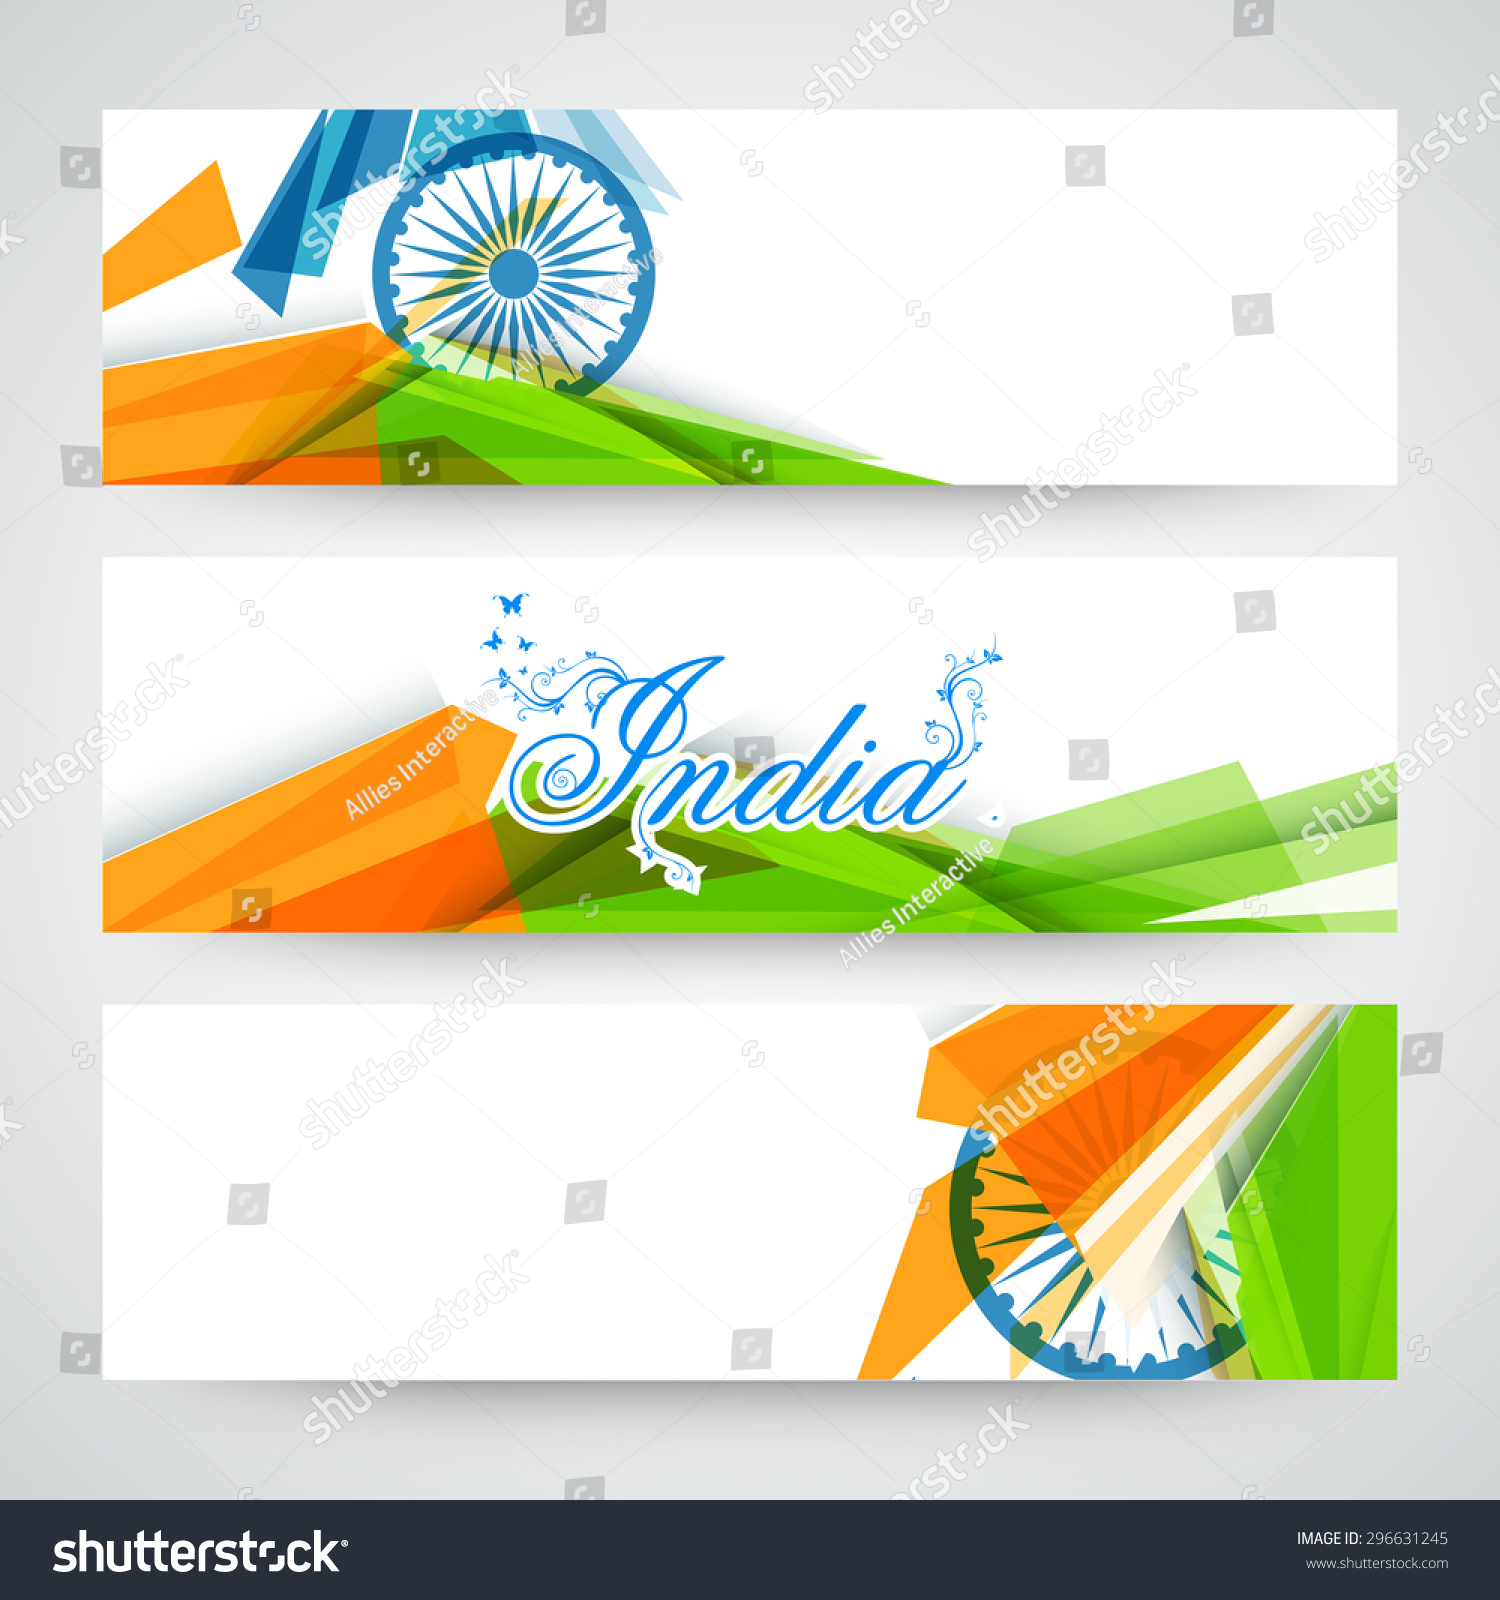 Colors website ashoka - Creative Website Header Or Banner Set Decorated With Ashoka Wheel And National Flag Color Abstract Design